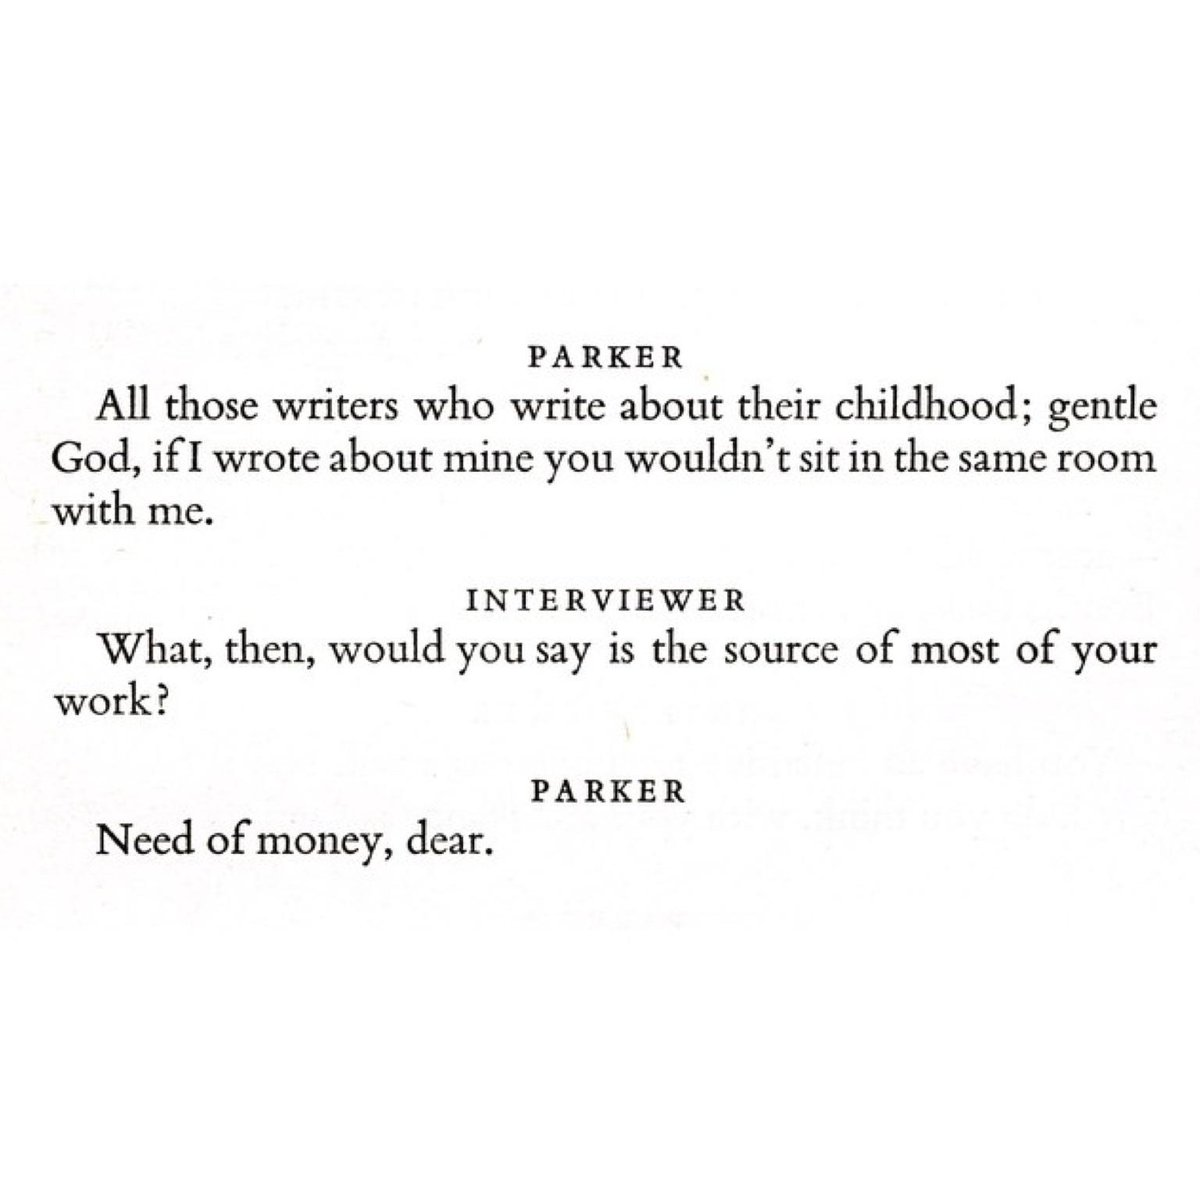 From Dorothy Parker's Art Of Fiction interview in issue 13 of the @ParisReview (Summer 1956) http://t.co/1hpn89iG7O